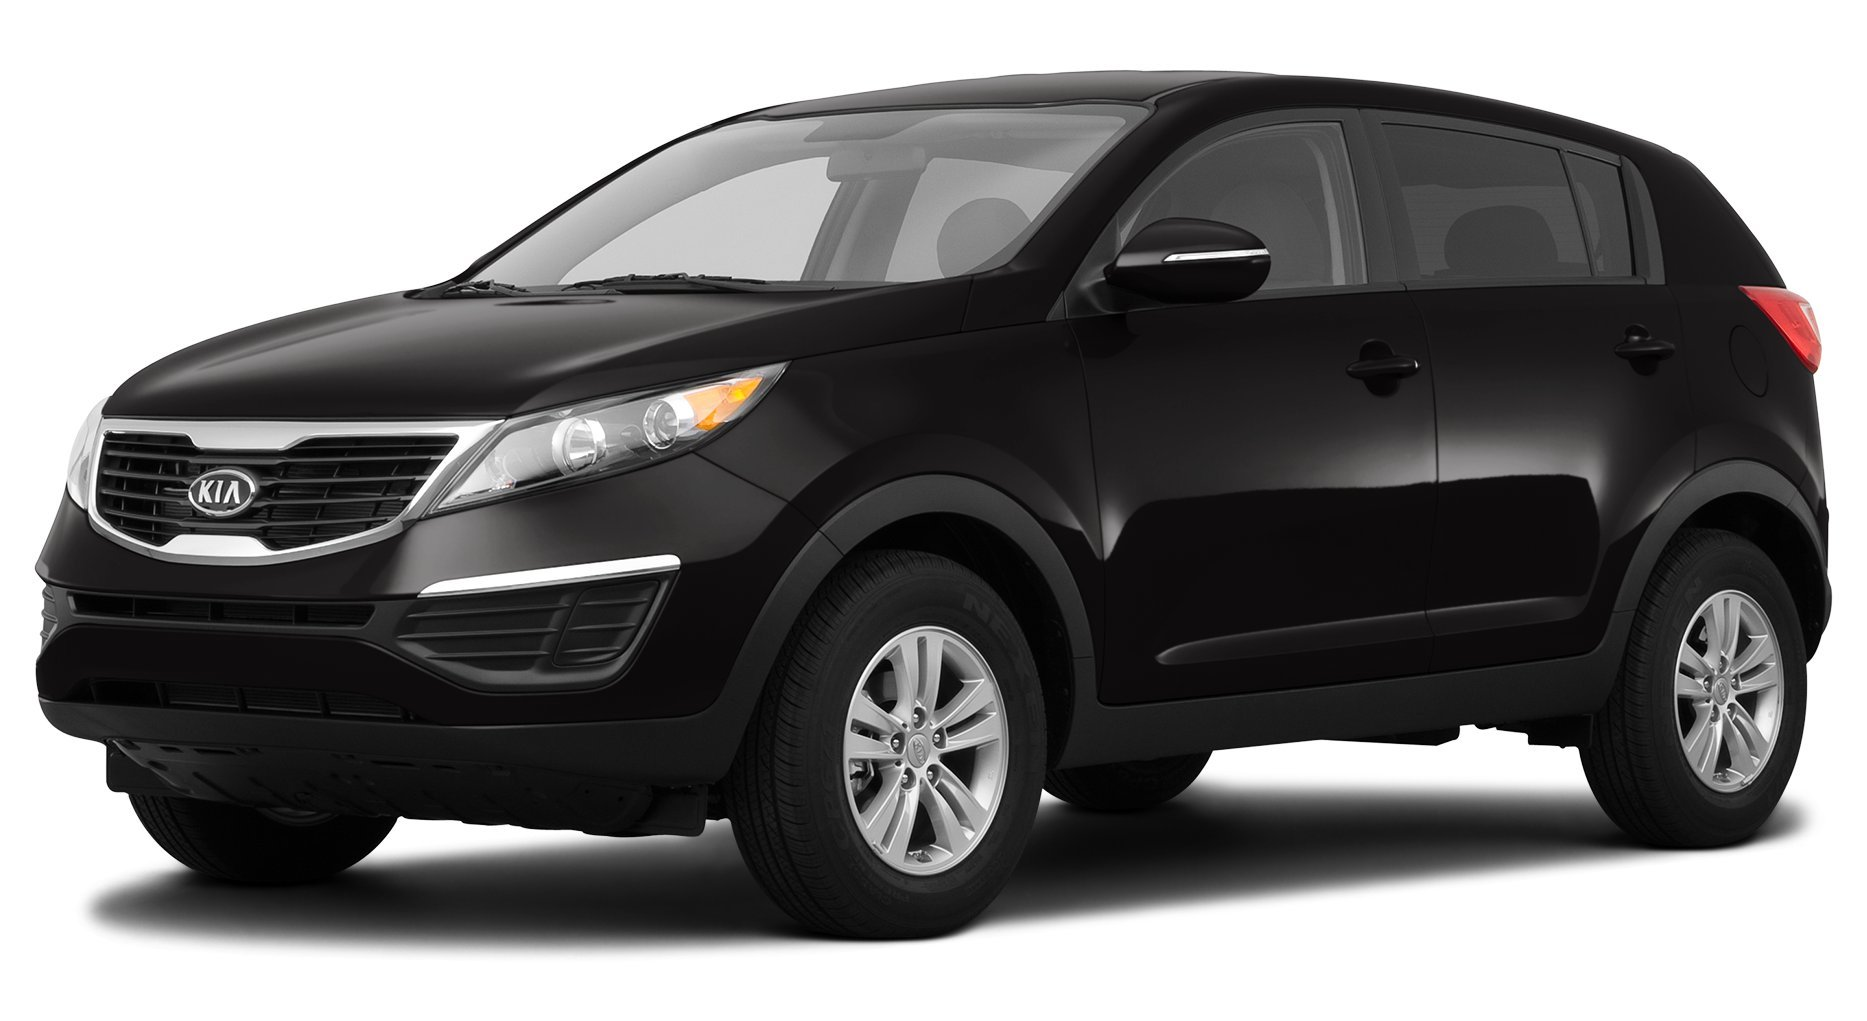 2011 kia sportage reviews images and specs vehicles. Black Bedroom Furniture Sets. Home Design Ideas